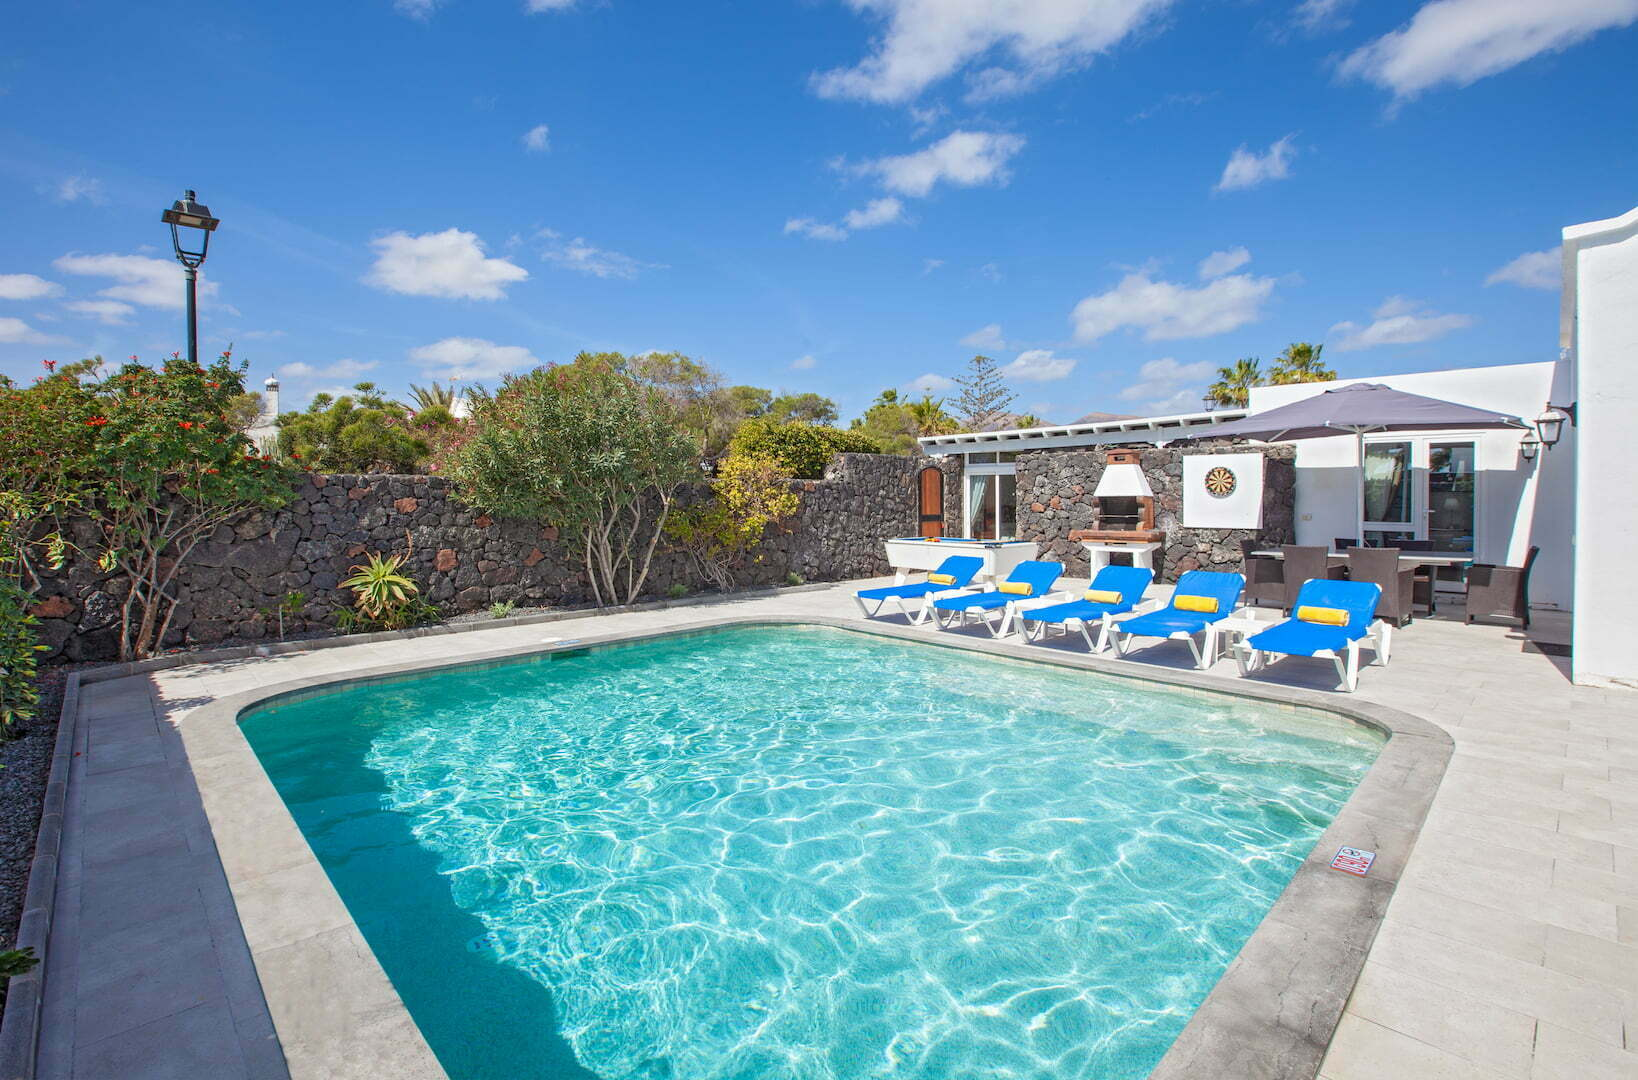 Casa Cristal - Terrace Area With Sun Loungers - Private Salt Water Swimming Pool